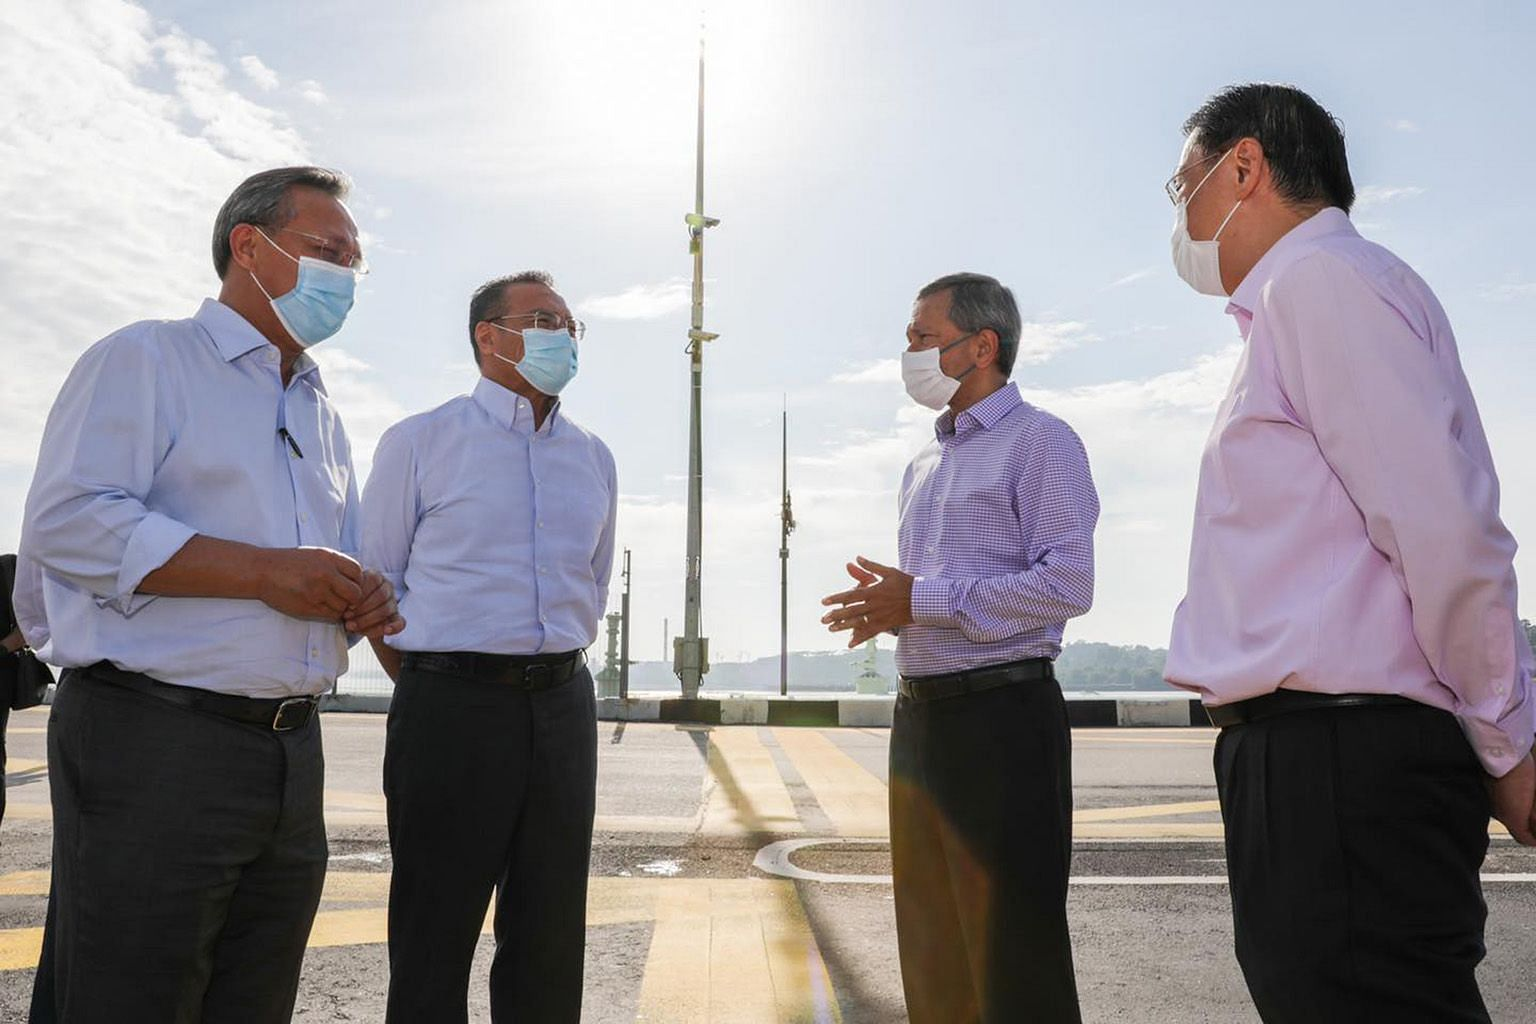 (From left) Johor Menteri Besar Hasni Mohammad, Malaysian Foreign Minister Hishammuddin Hussein, Singapore Foreign Minister Vivian Balakrishnan and Permanent Secretary for Foreign Affairs Chee Wee Kiong meeting at the midpoint of the Causeway yesterd